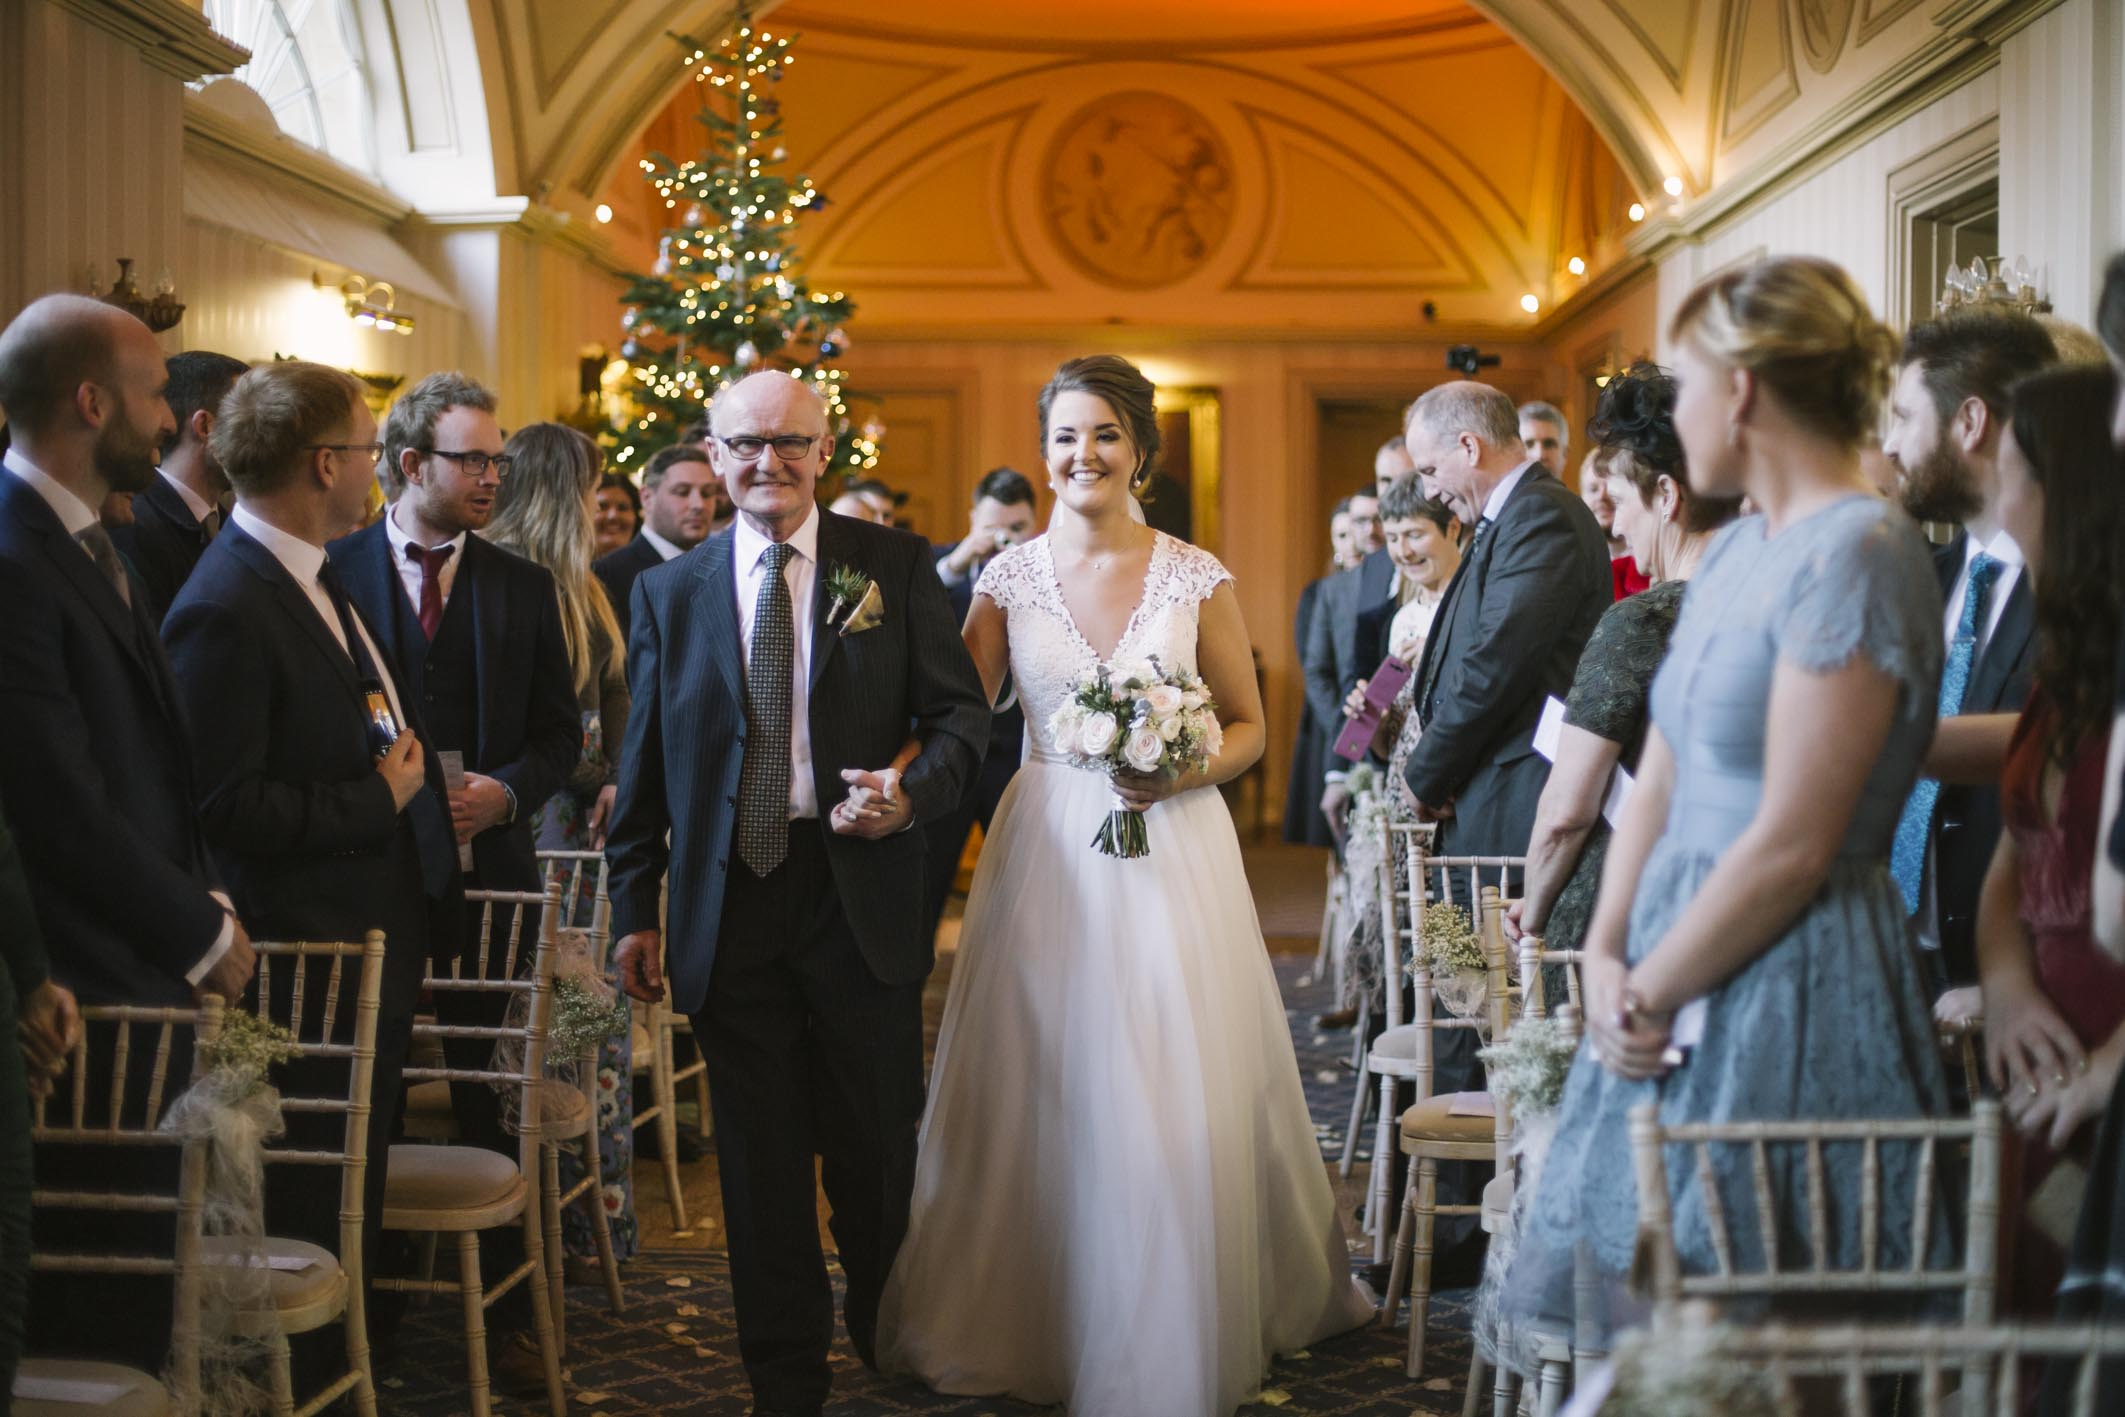 Bride walking down the aisle at Elegant Winter Balbirnie House Wedding by Ceranna Photography